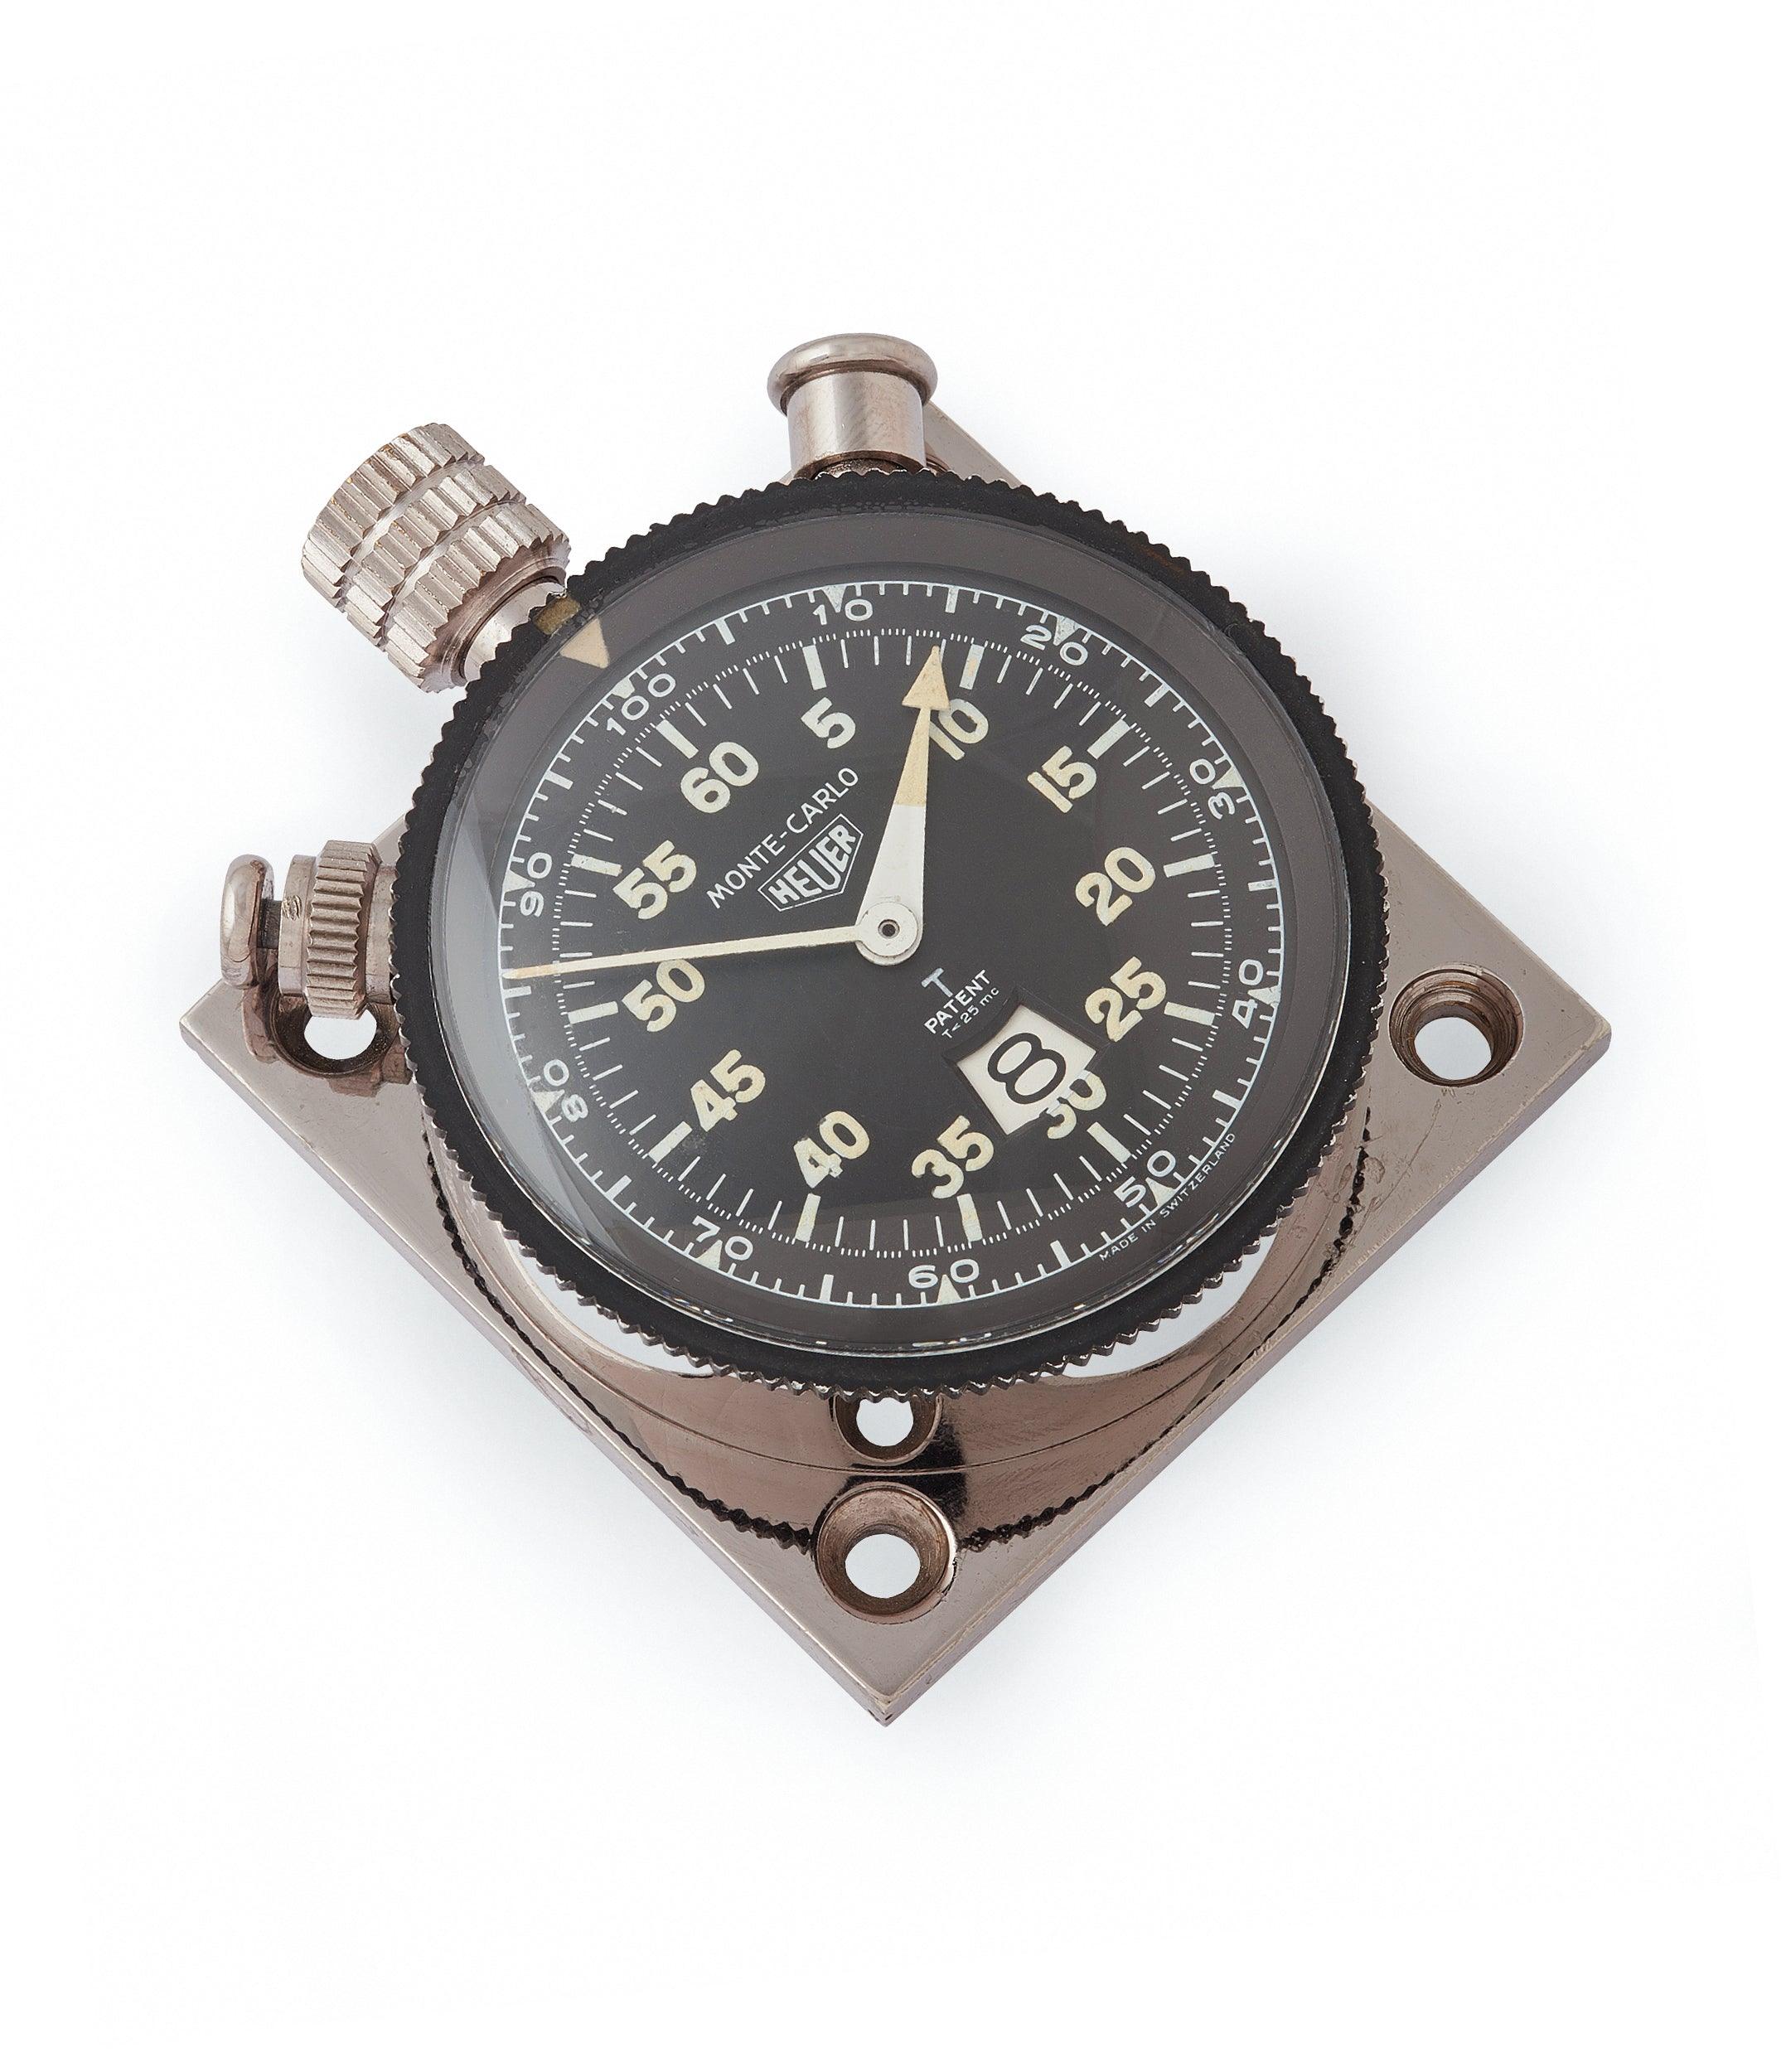 vintage Heuer Monte-Carlo Stopwatch Timer RAF-issued Broad Arrow chronograph for sale at A Collected Man London